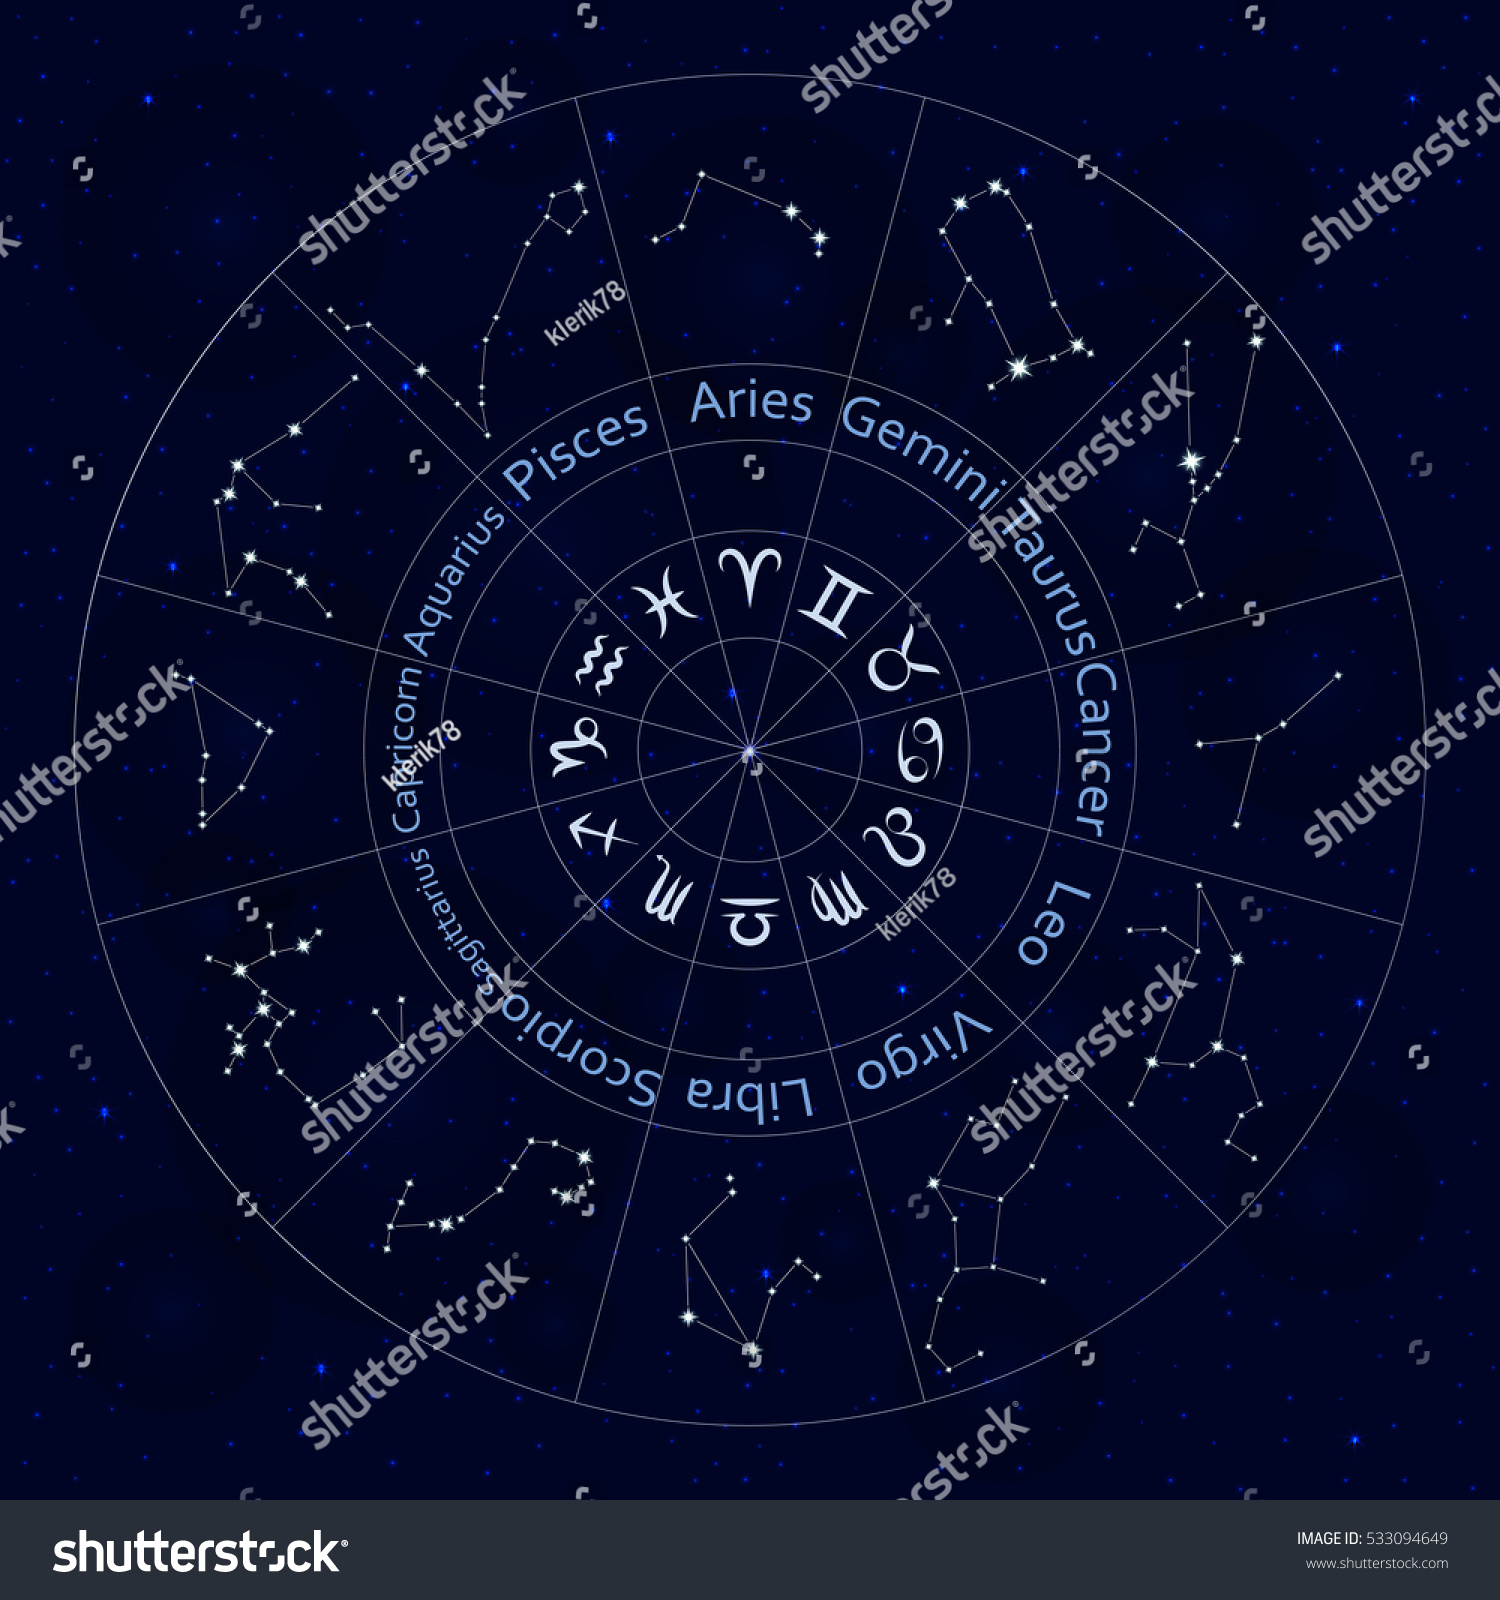 Astrology And Science